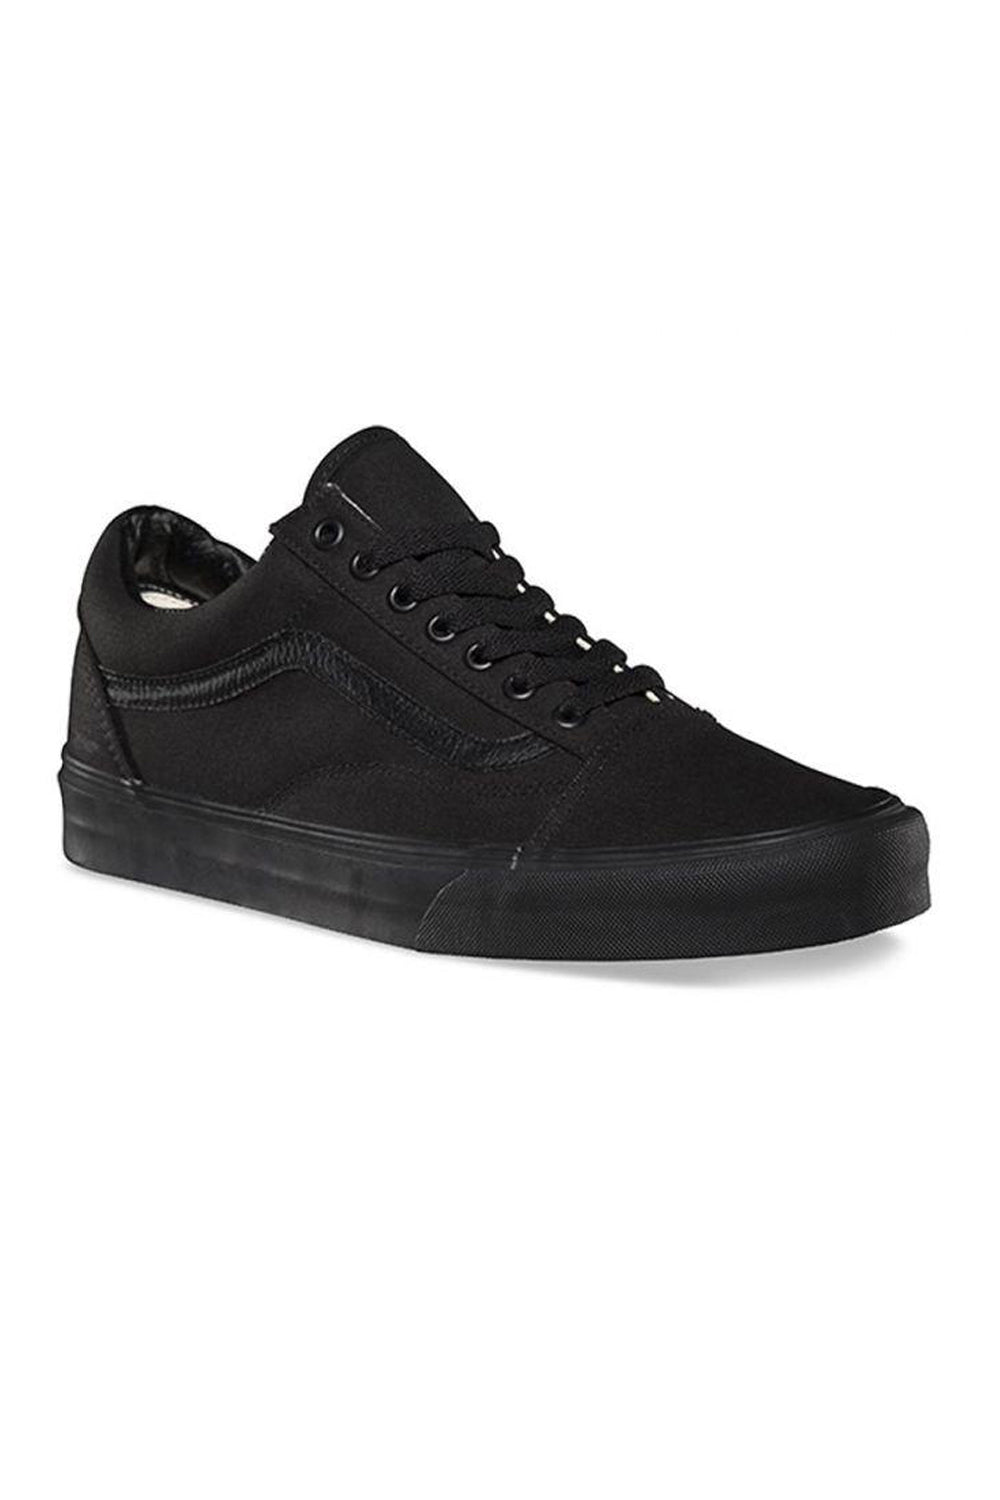 Old Skool Black / Black